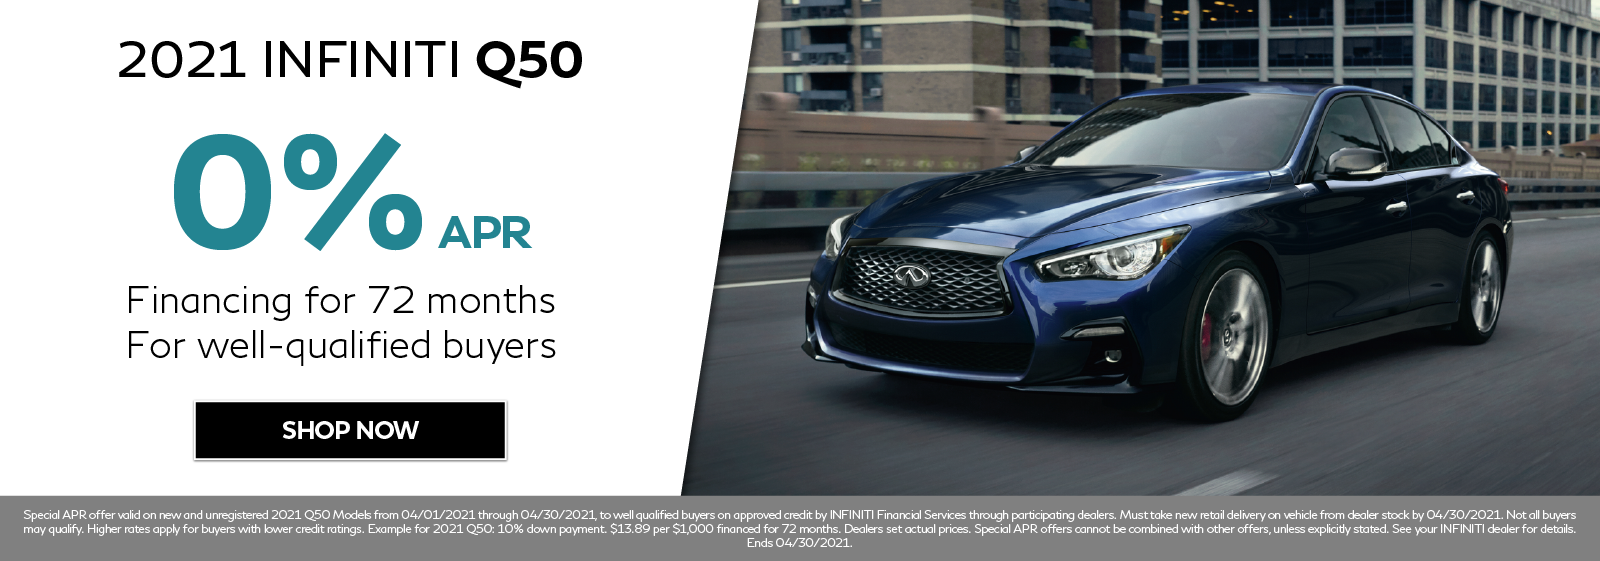 0% APR on new 2021 INFINITI Q50. Click to shop now.